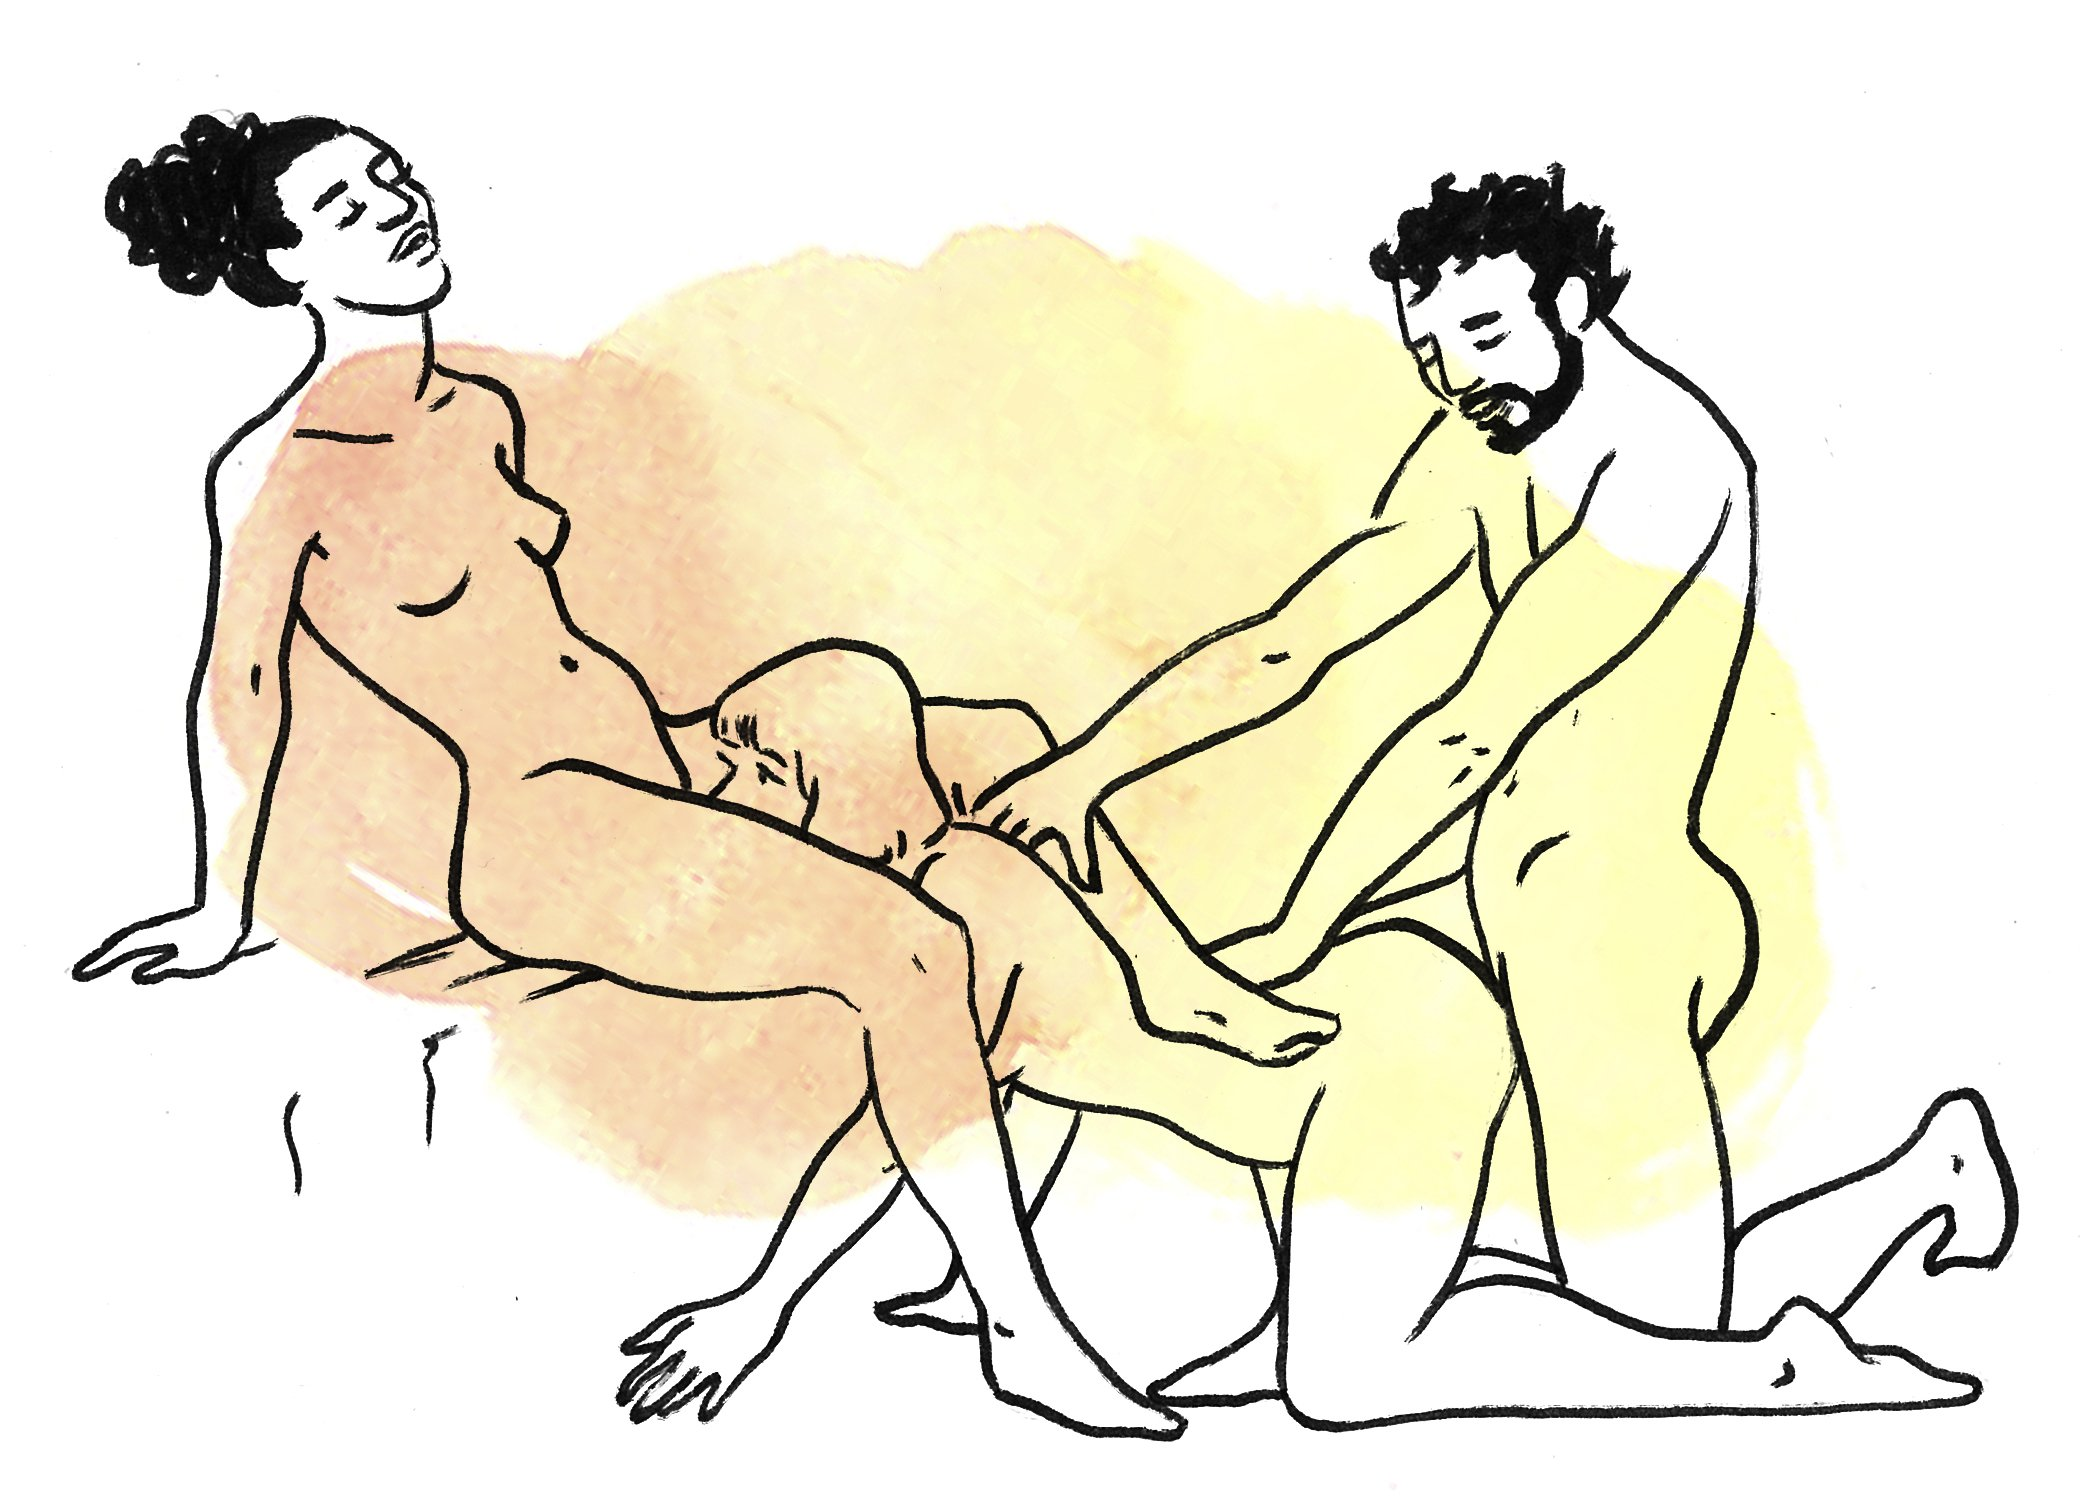 Positions threesome